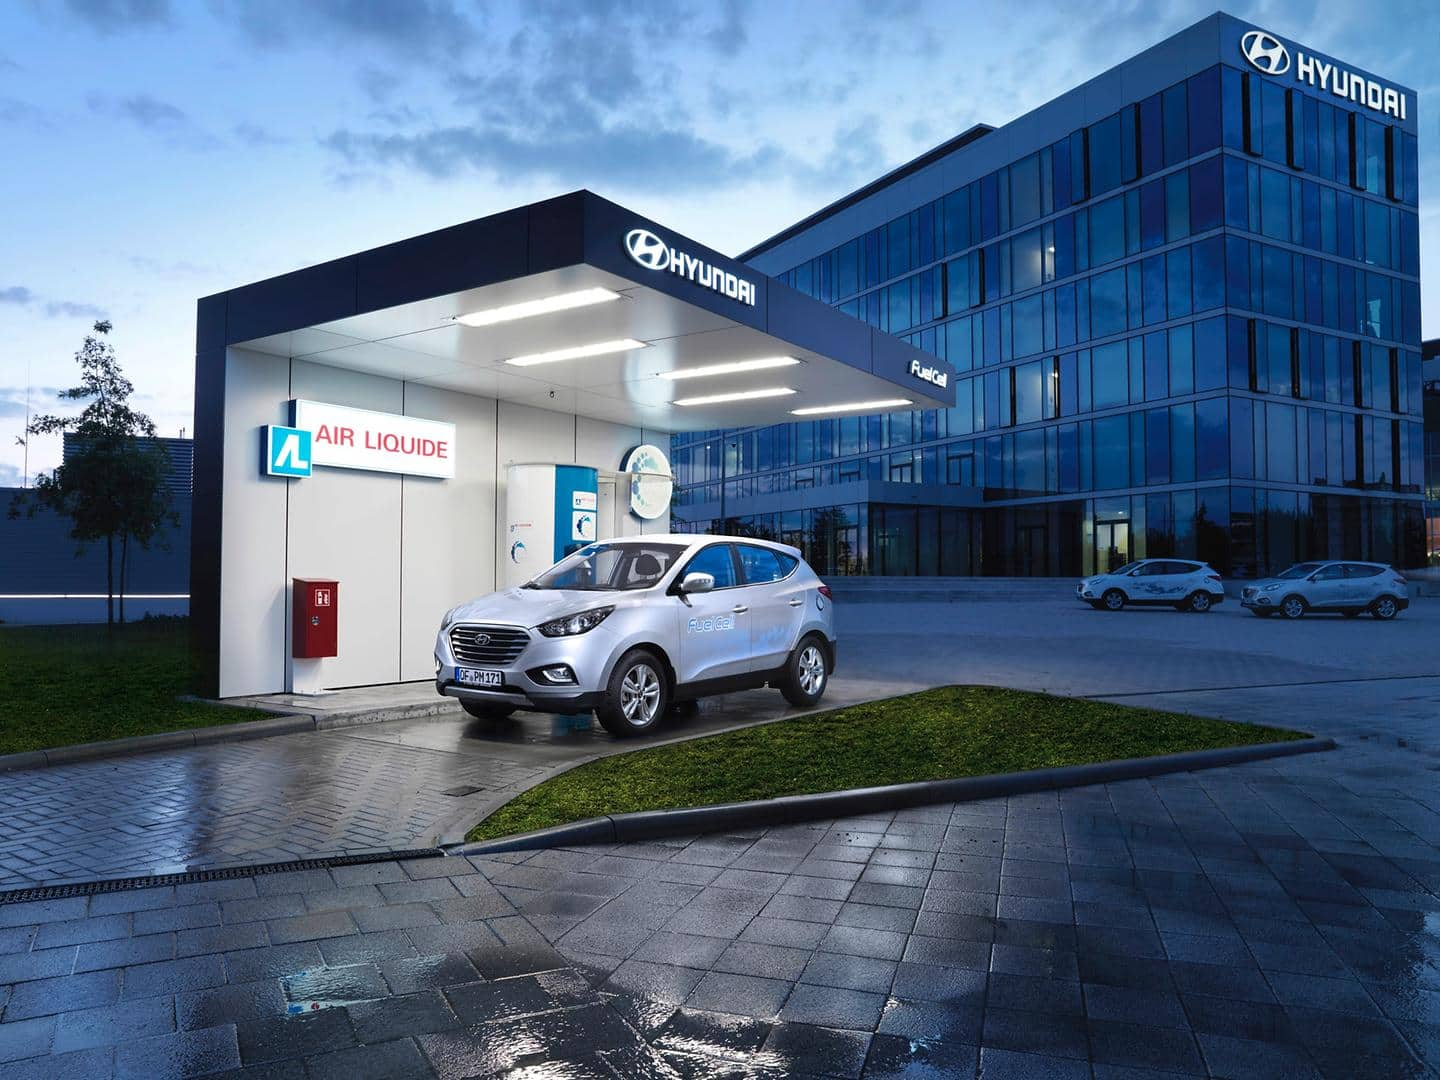 H2 at HQ: Hyundai opens public hydrogen refuelling station in Germany